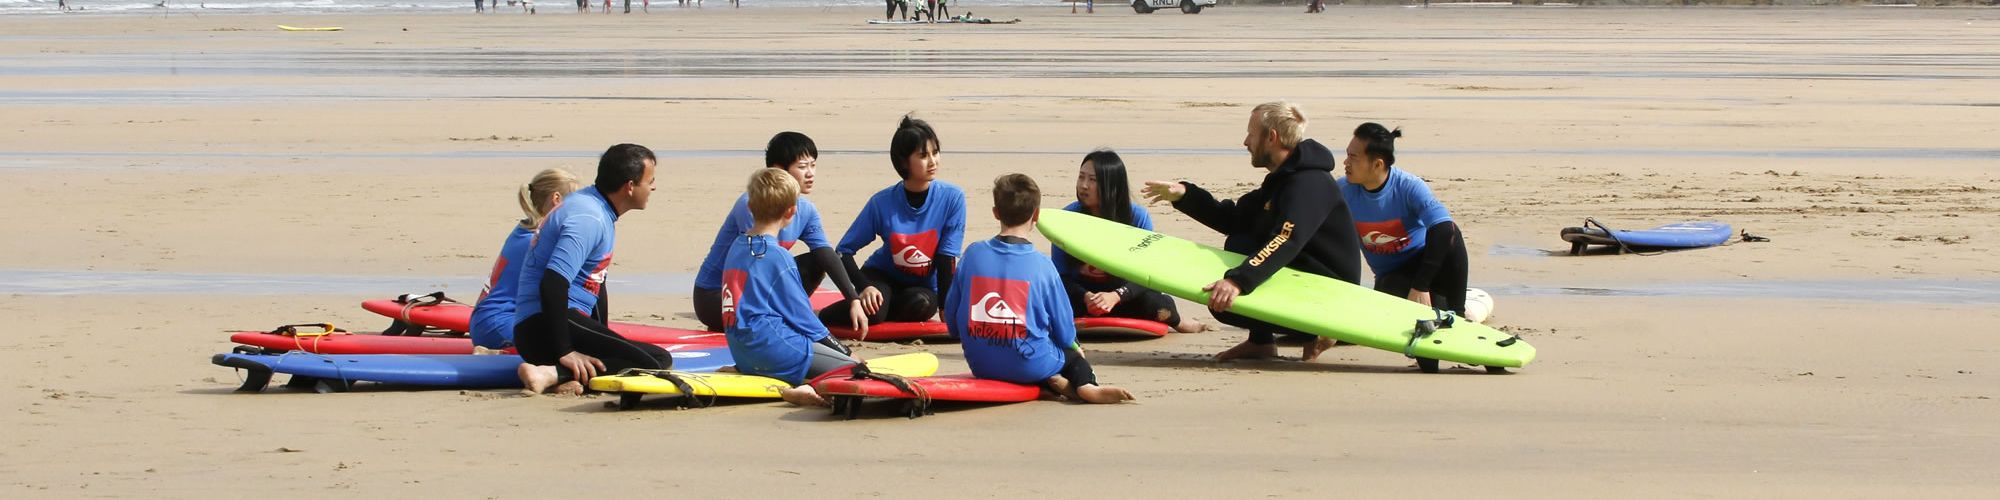 Surf Group Lesson